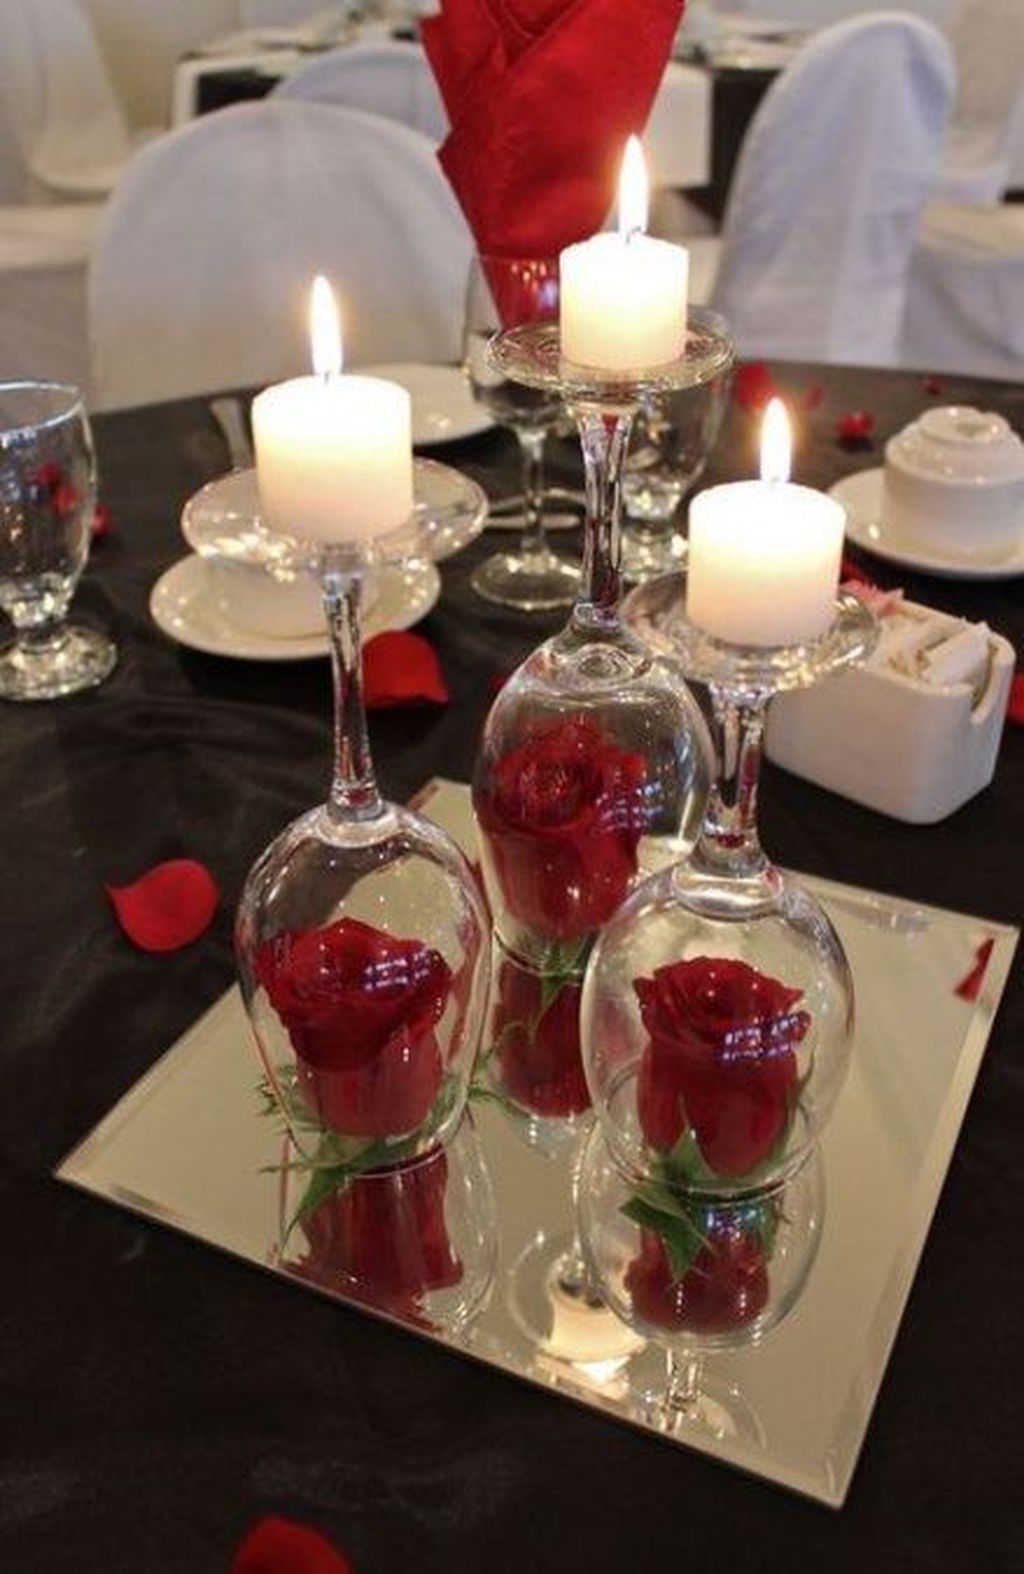 44 Stunning Valentine Table Centerpiece Ideas Homyhomee In 2020 Wine Glass Candle Holder Christmas Table Centerpieces Wine Glass Candle